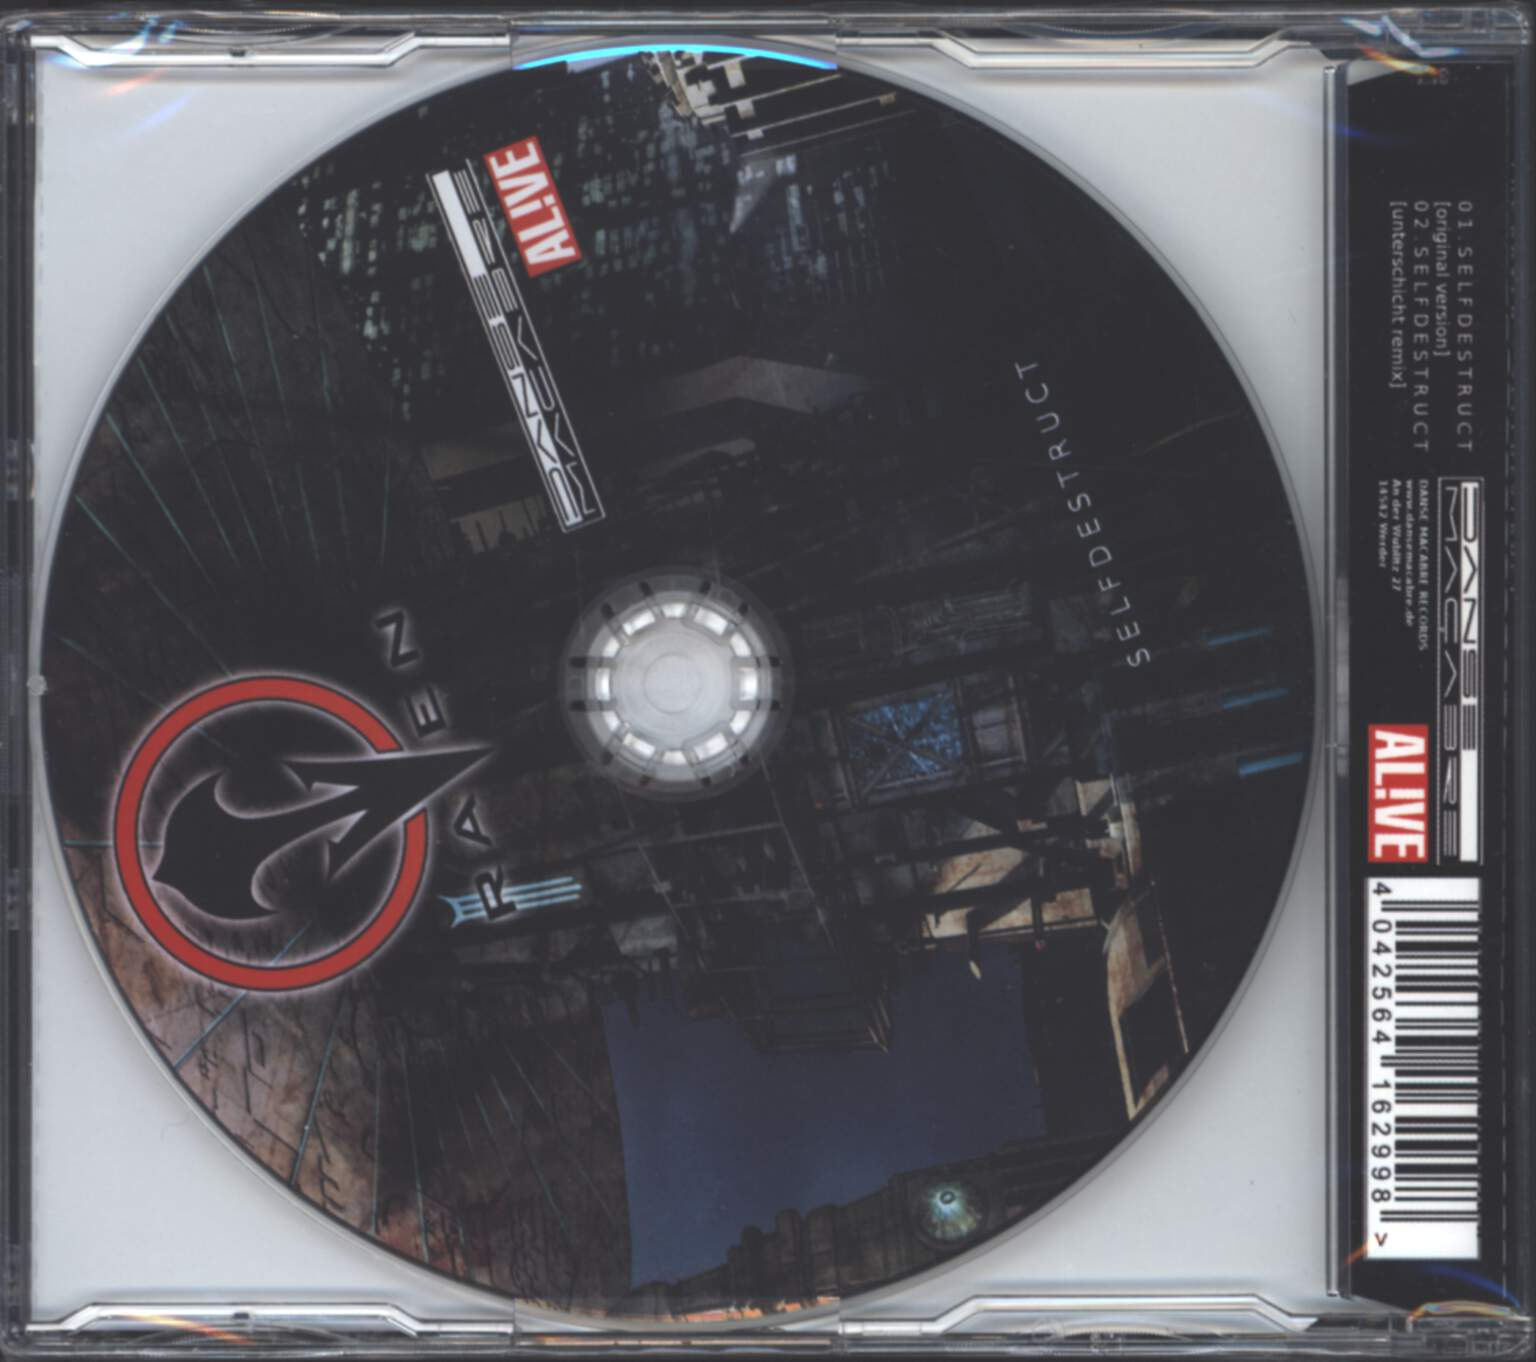 The Raven: Selfdestruct, Mini CD